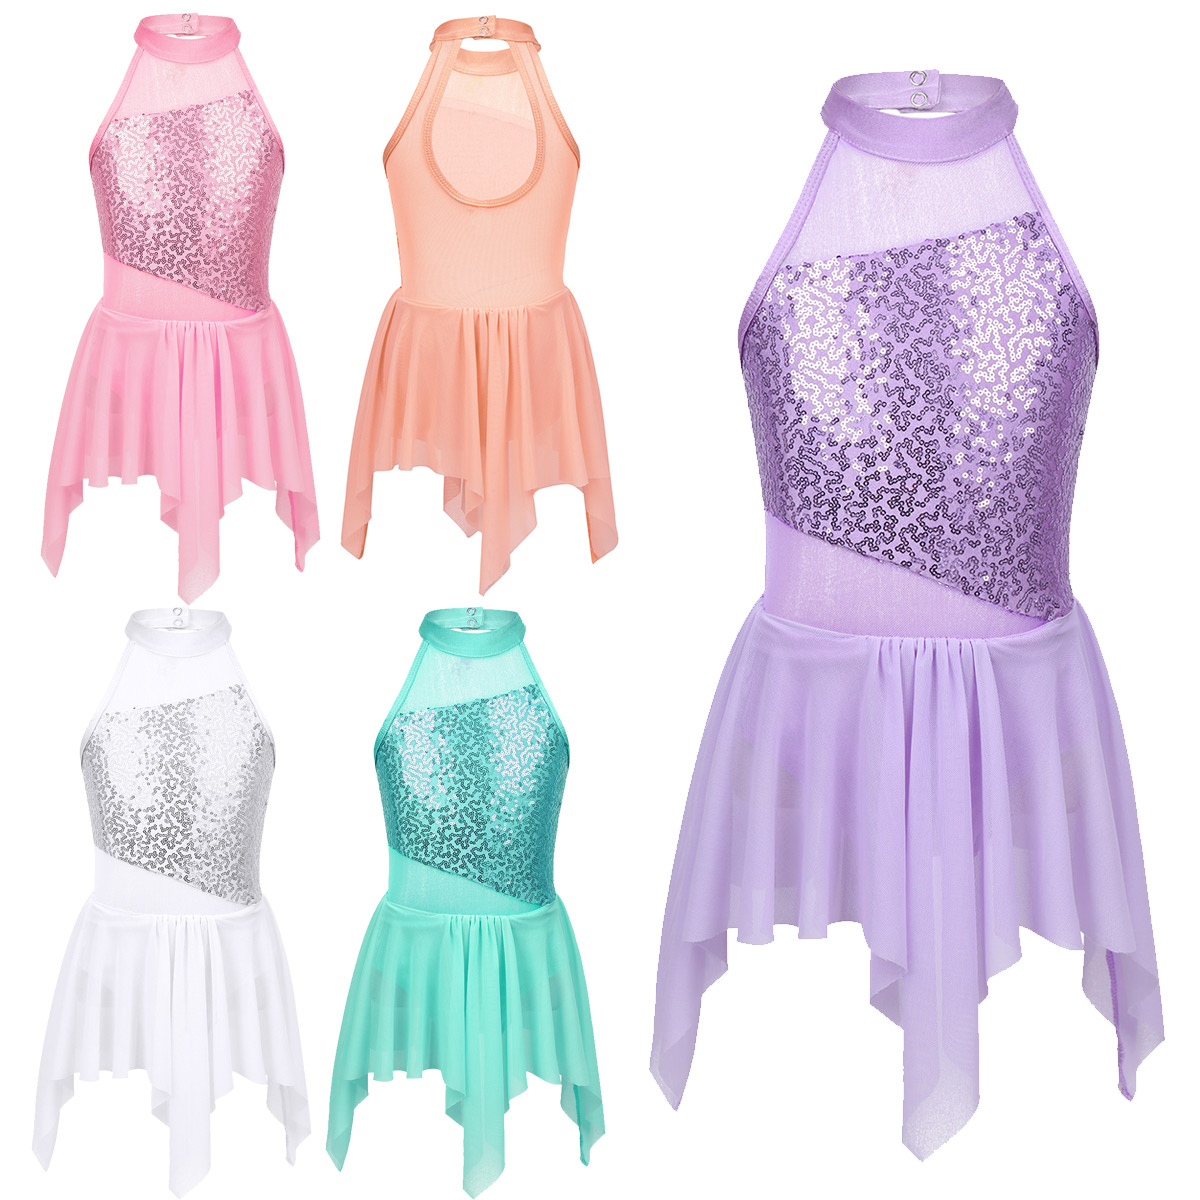 iixpin Kids Girls Sequins Figure Ice Skating Dance Tutu Dress Stage Performance Mesh Skirt with Hair Clips Set